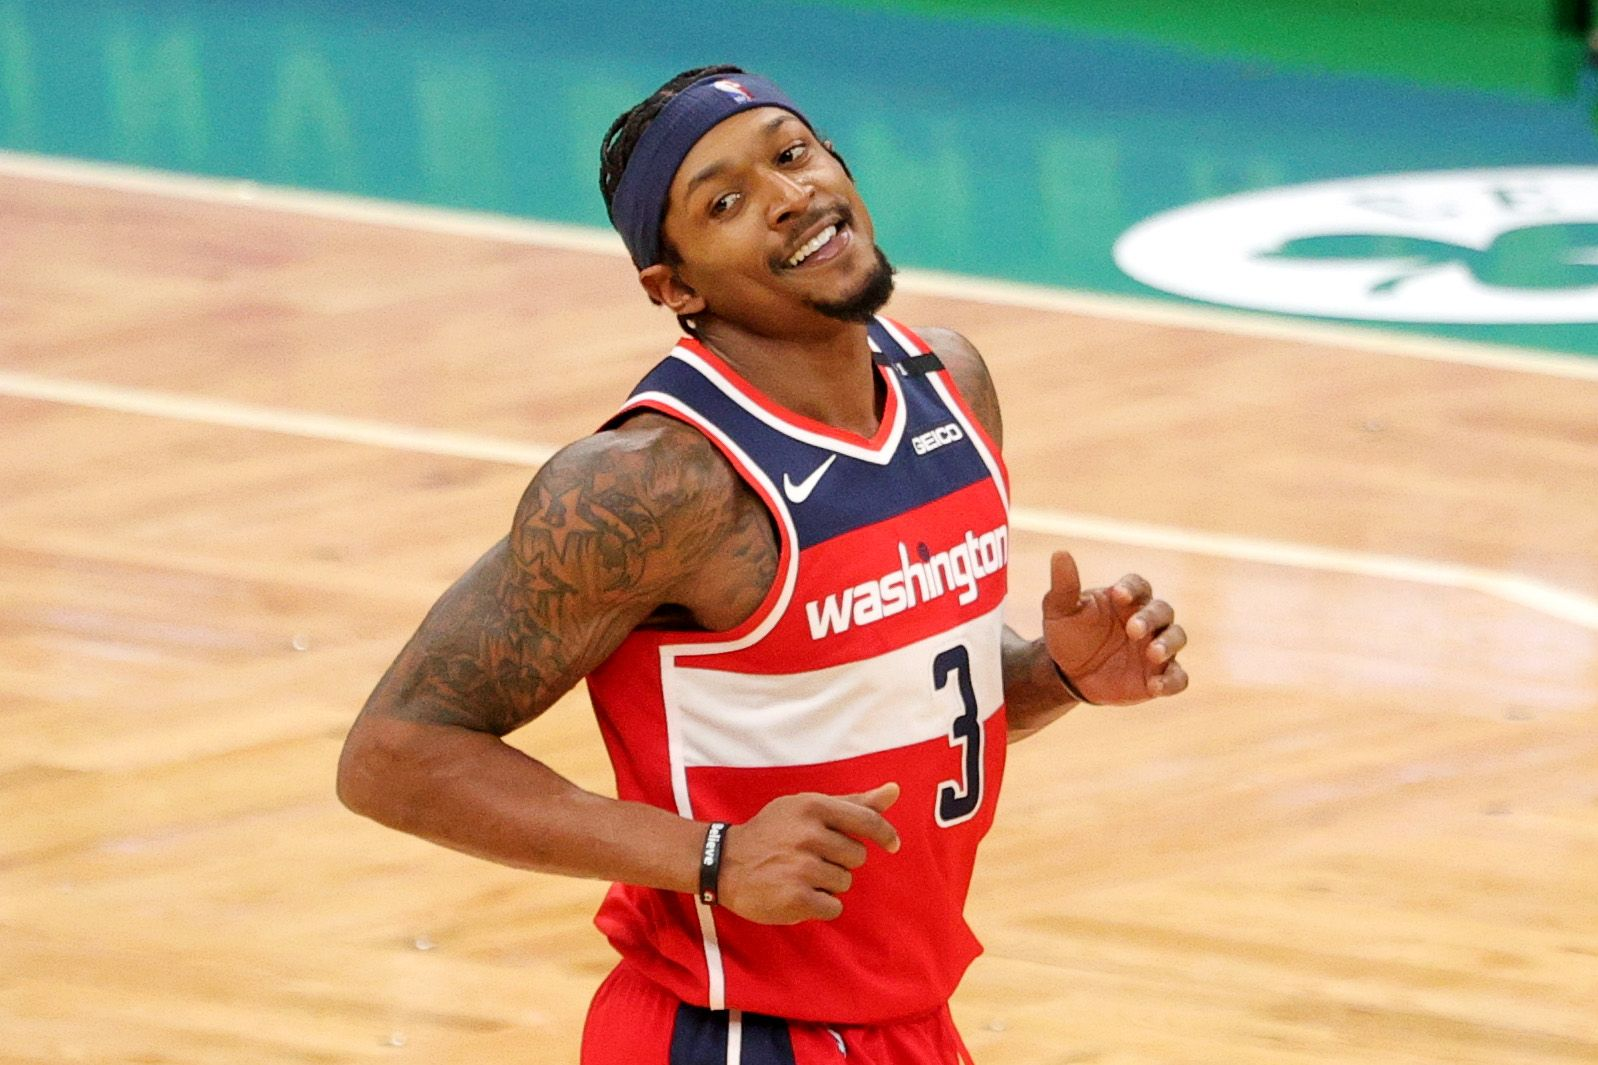 Bradley Beal making funny face after a successful play